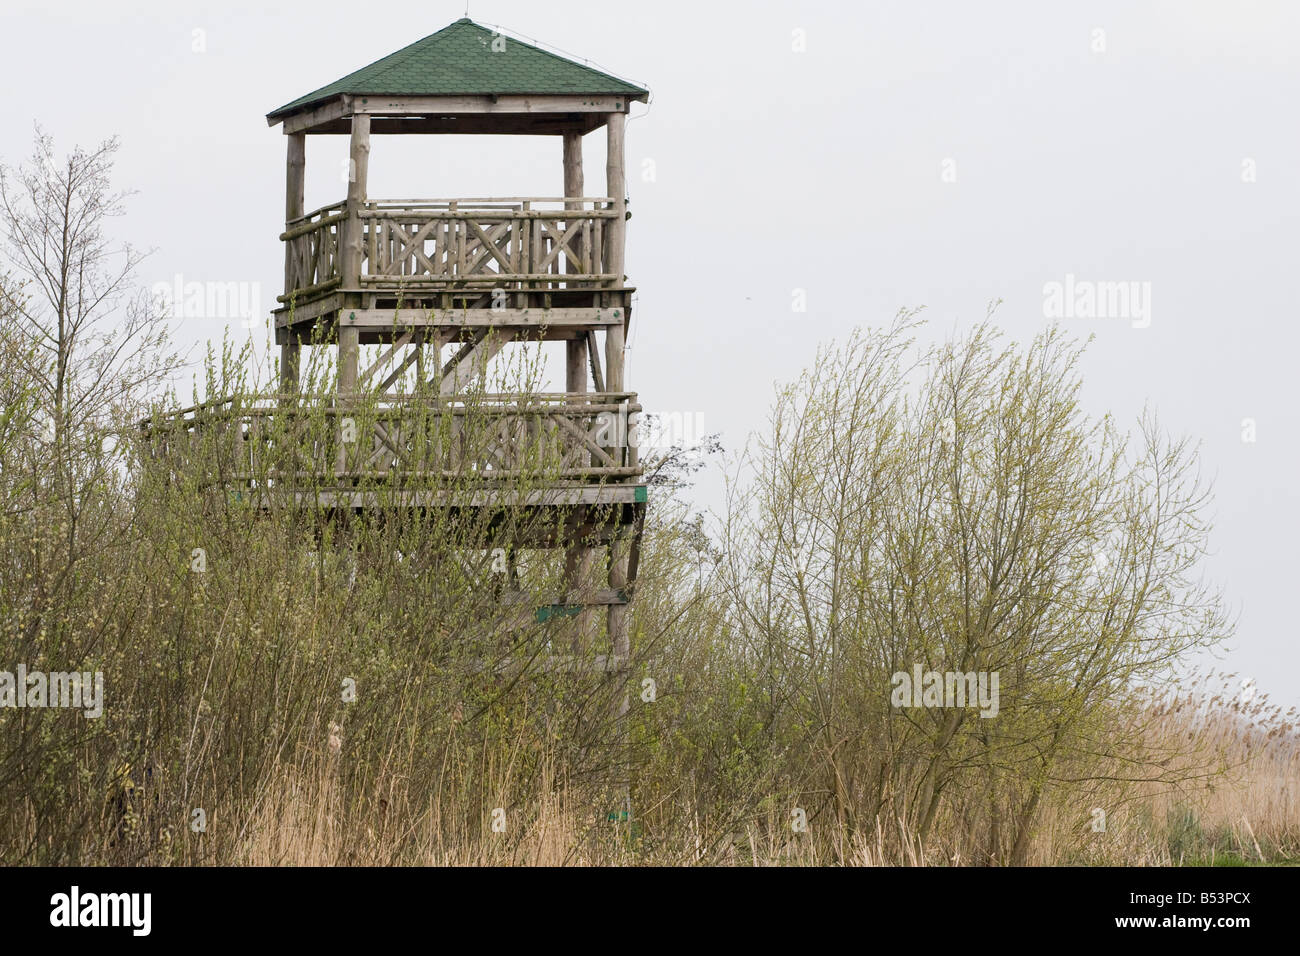 tower control tower to watch observe bird wildlife - Stock Image